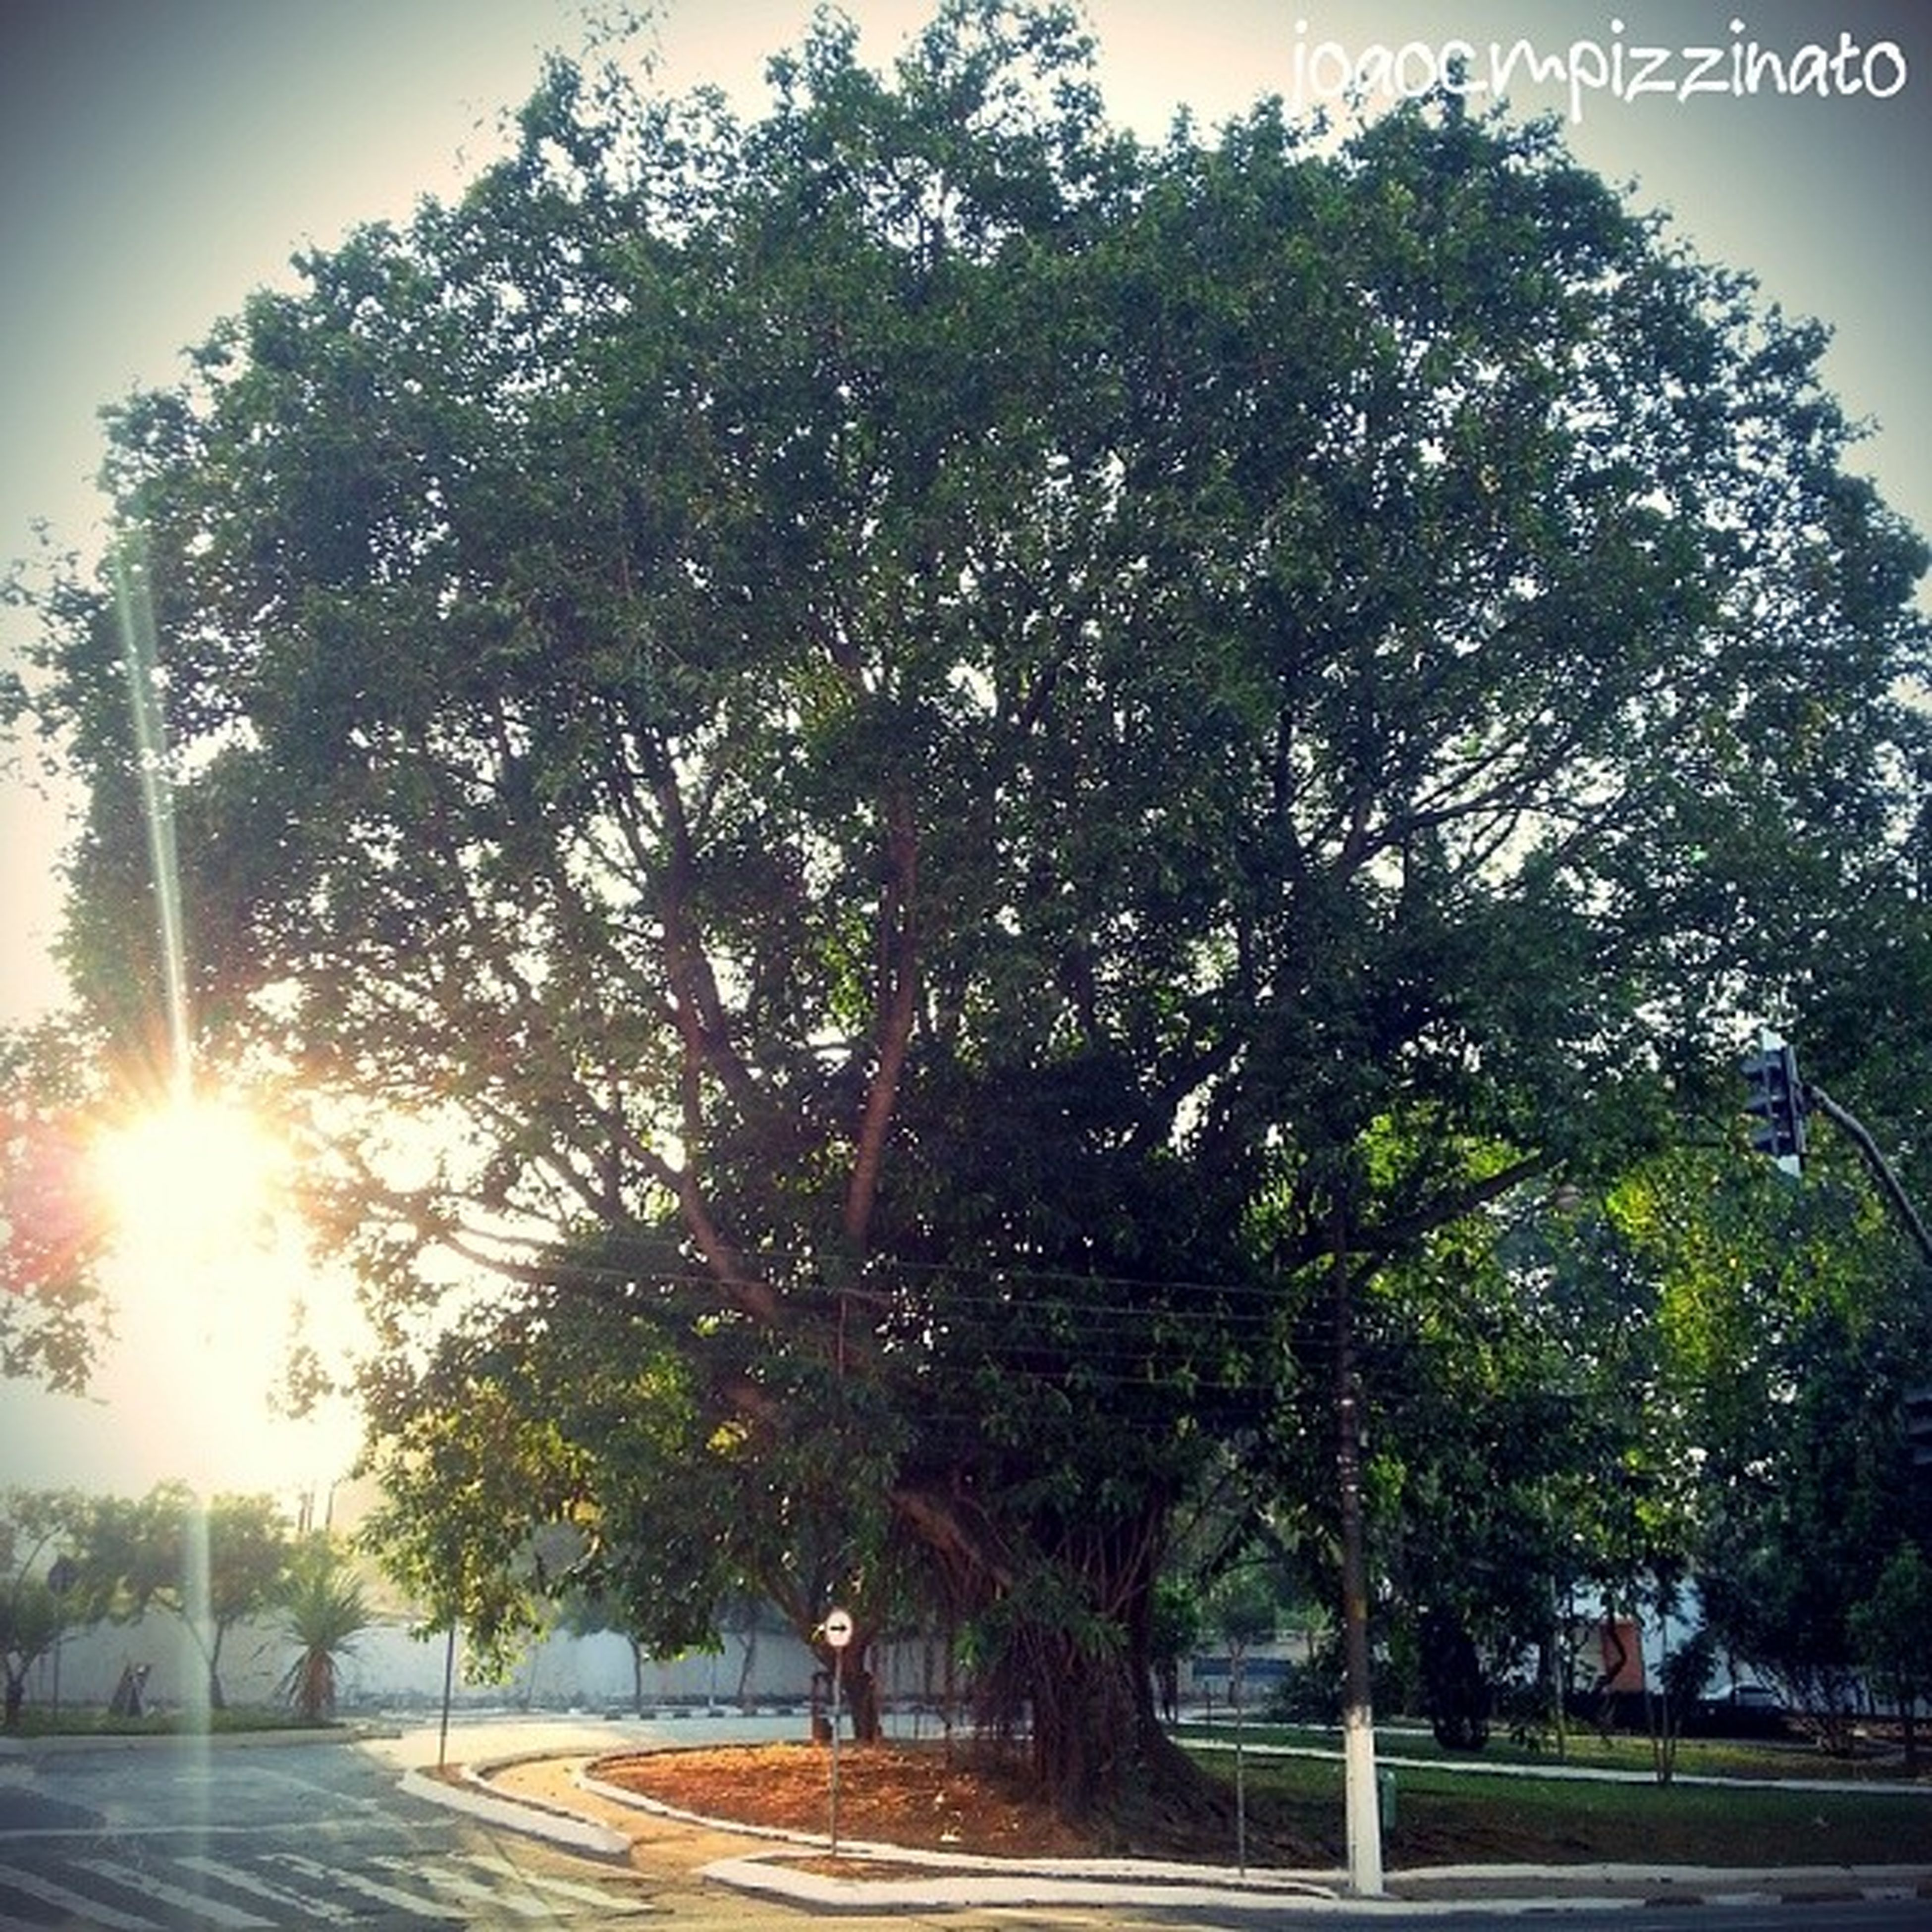 tree, transportation, road, the way forward, street, sunlight, car, growth, land vehicle, sky, nature, branch, outdoors, treelined, mode of transport, street light, incidental people, road marking, shadow, day